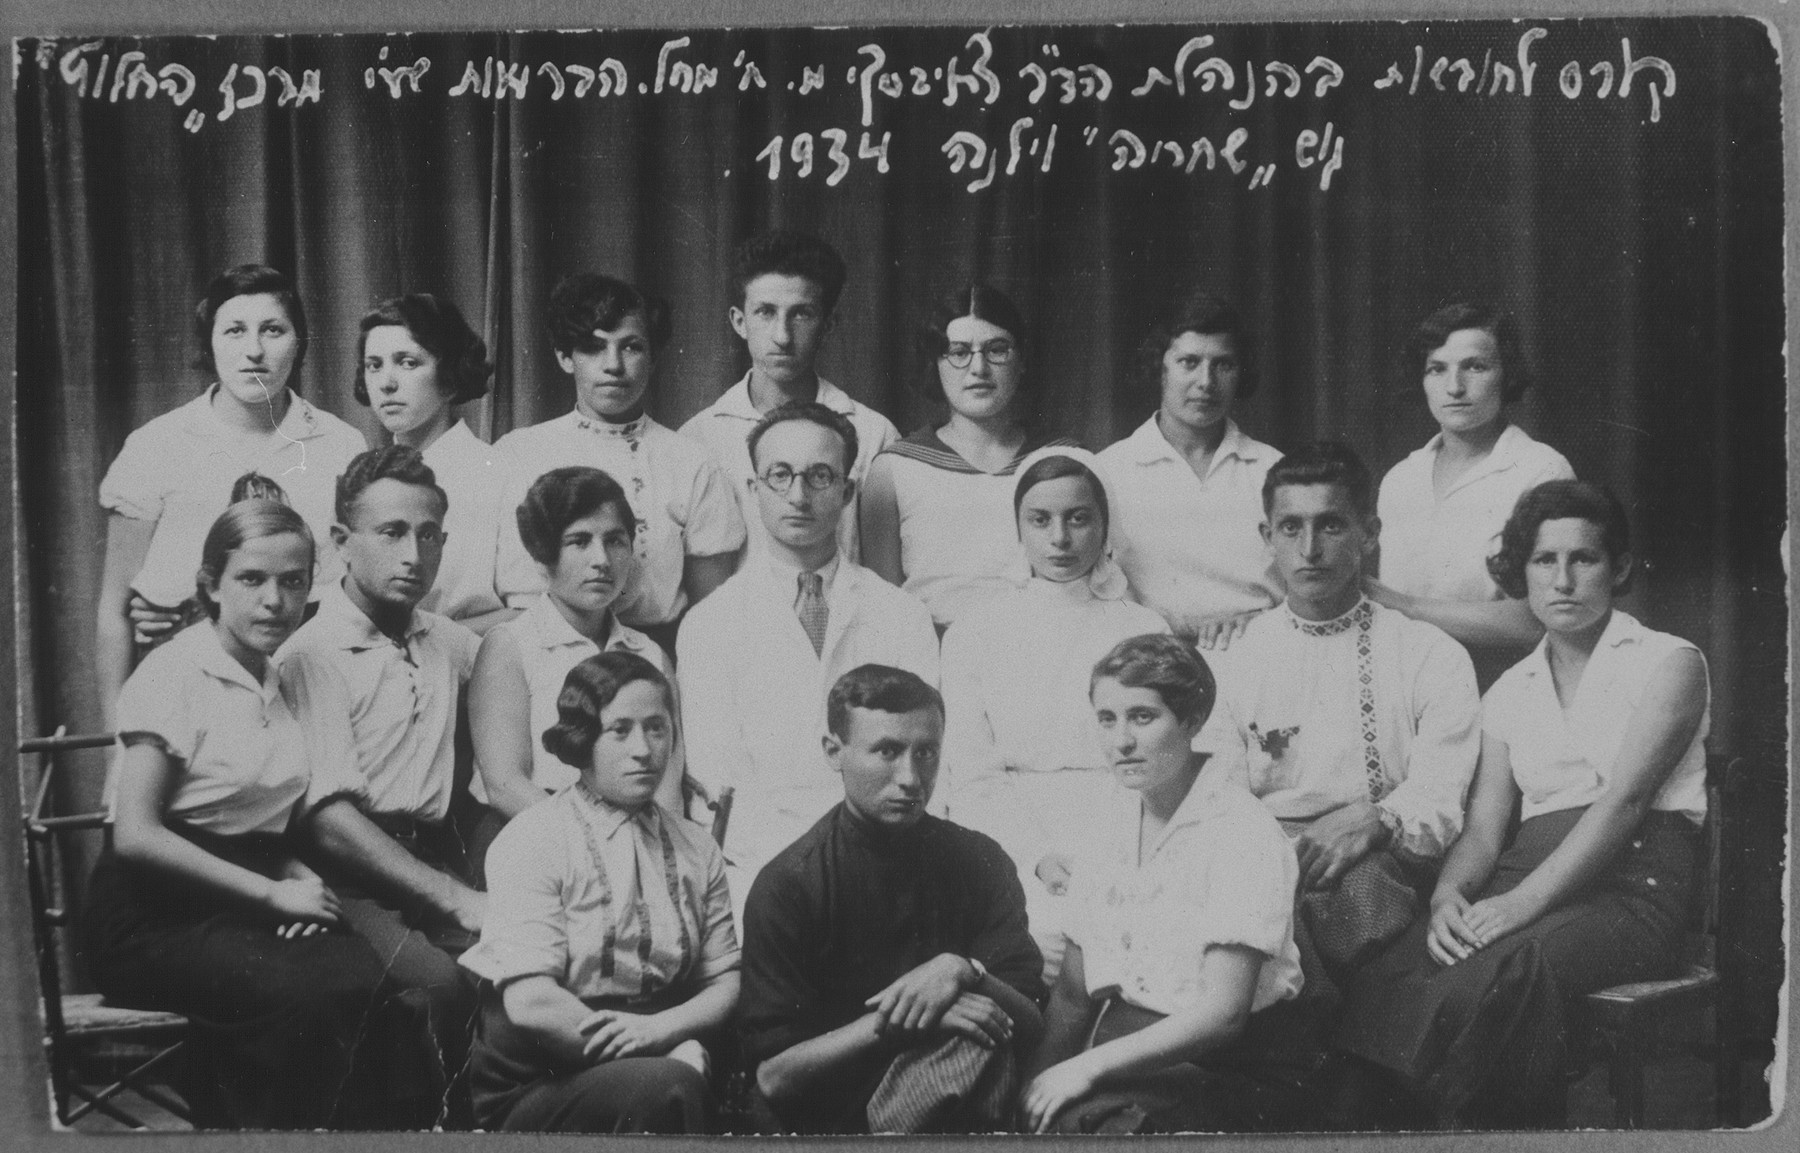 Members of the Zionist Hehalutz group in Vilna.  Among those pictured is Sara Plotnik.